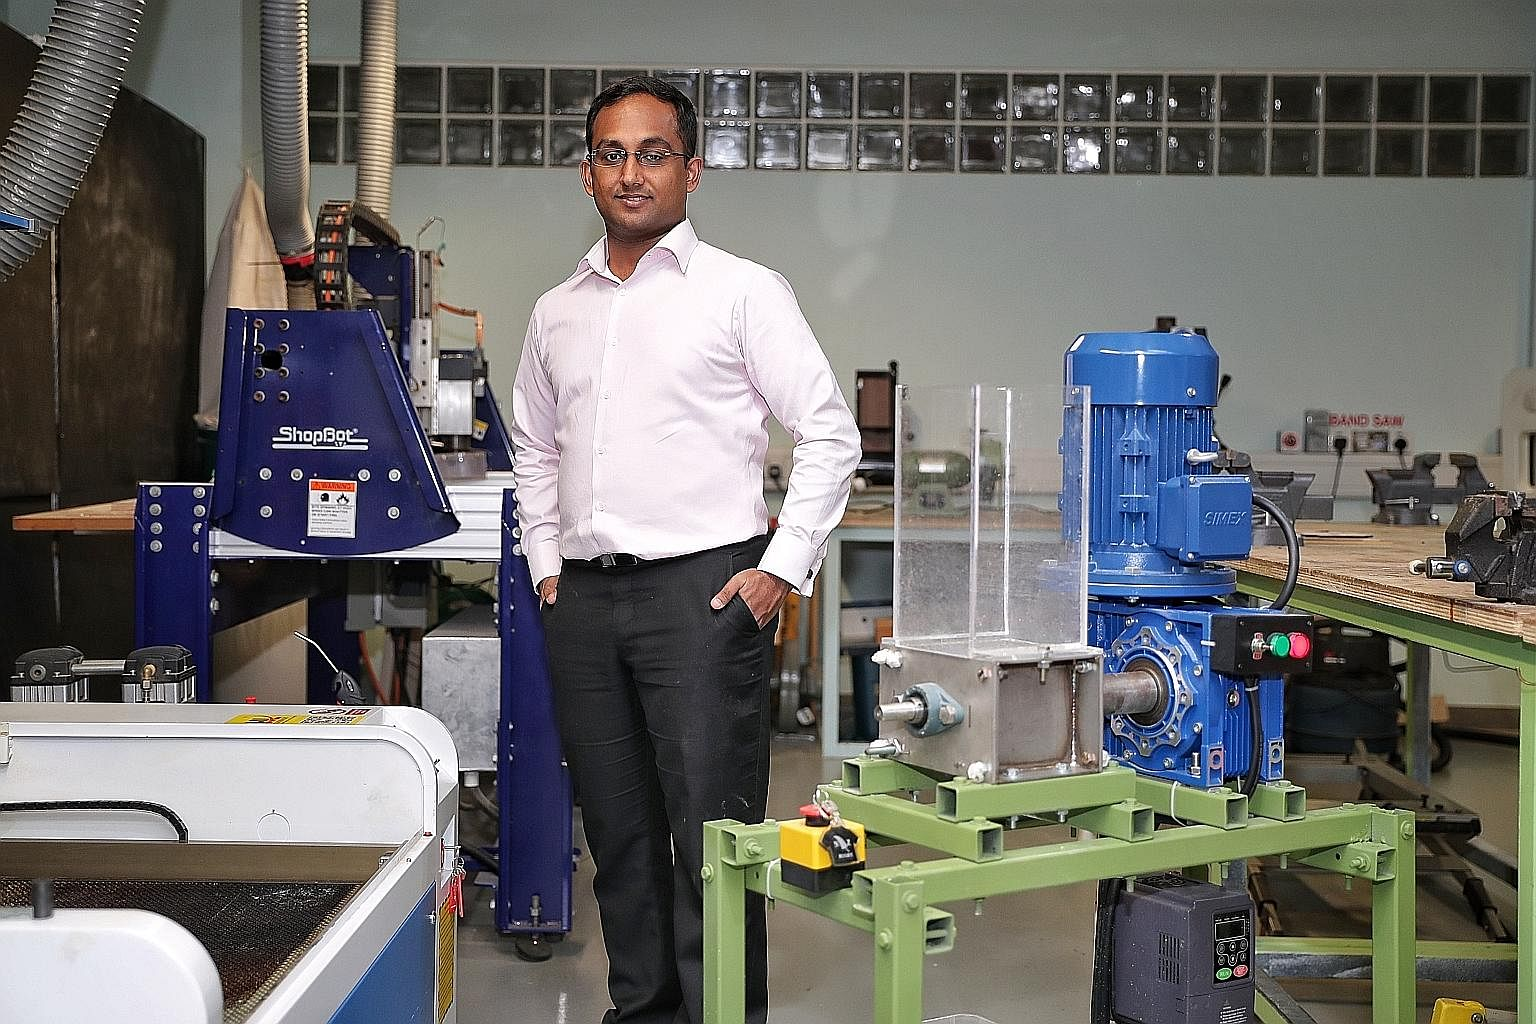 Mr Veerappan Swaminathan founded Sustainable Living Lab in 2011 with two friends after he graduated from the National University of Singapore, having studied mechanical engineering. He finds satisfaction in seeing change in the habits of those who ha